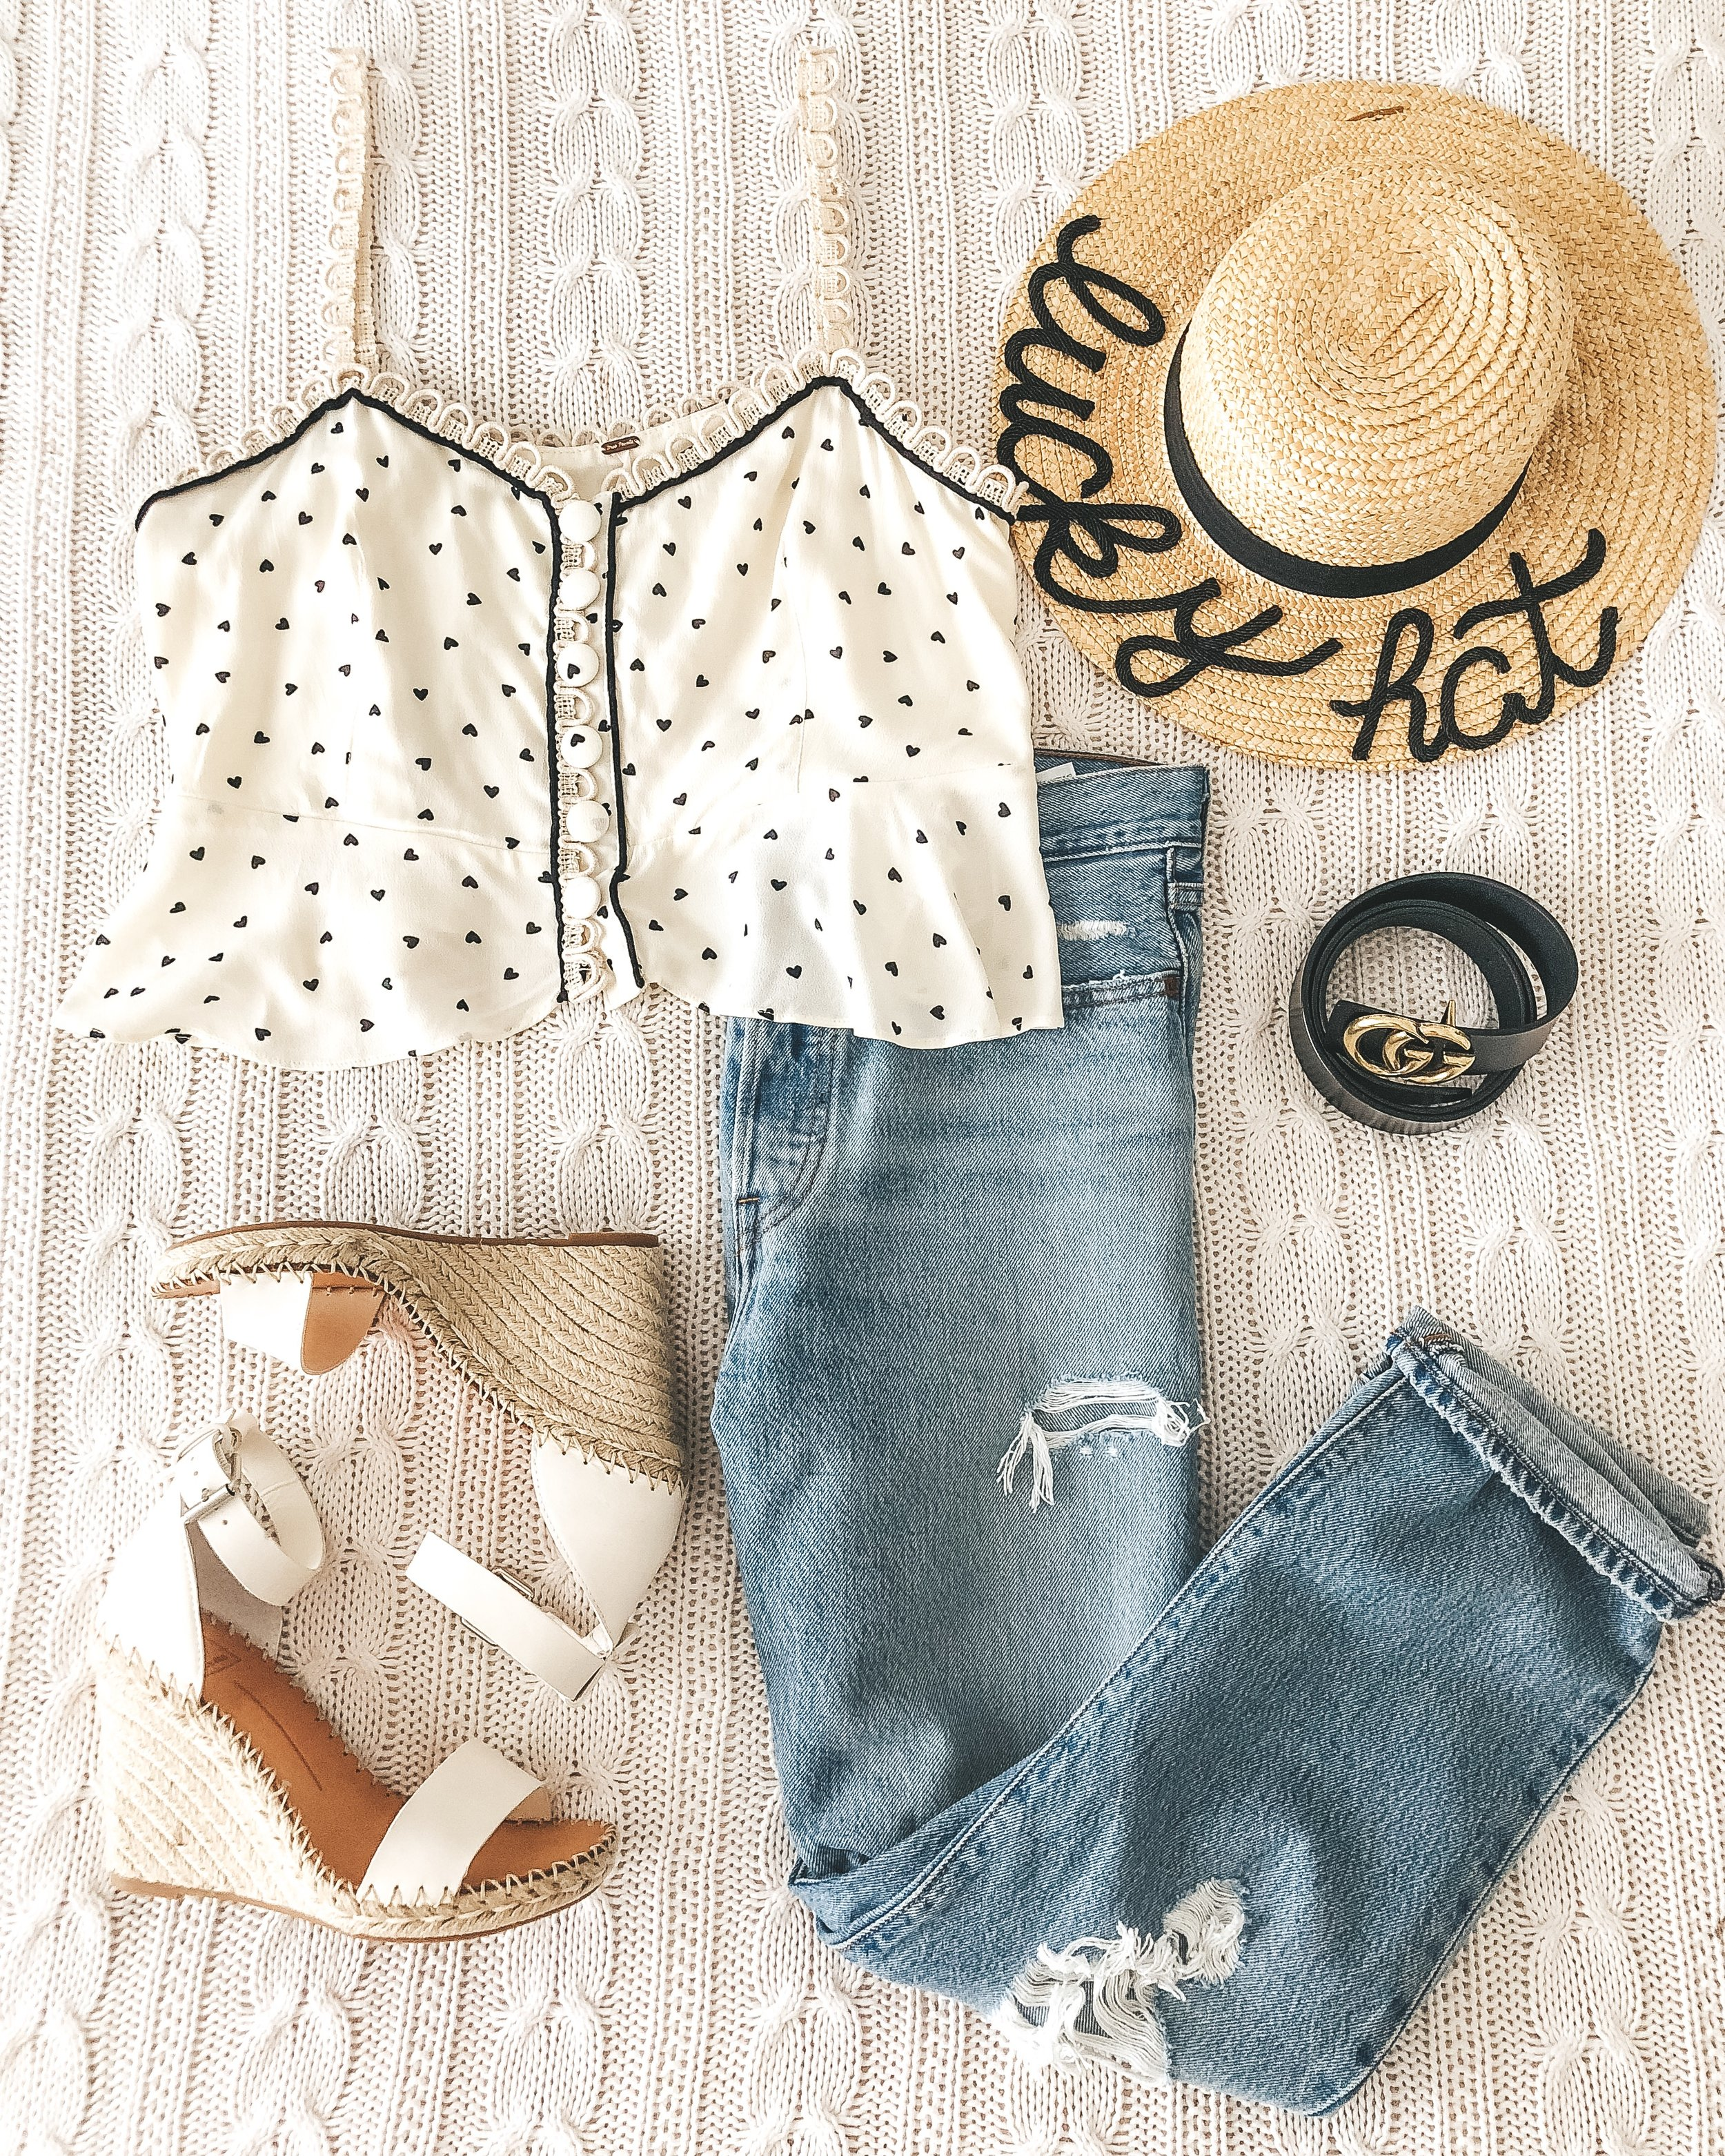 free people true to the heart tank, levi's wedgie straight, dolce vita noor wedge sandals, gucci belt, graphic boater hat.